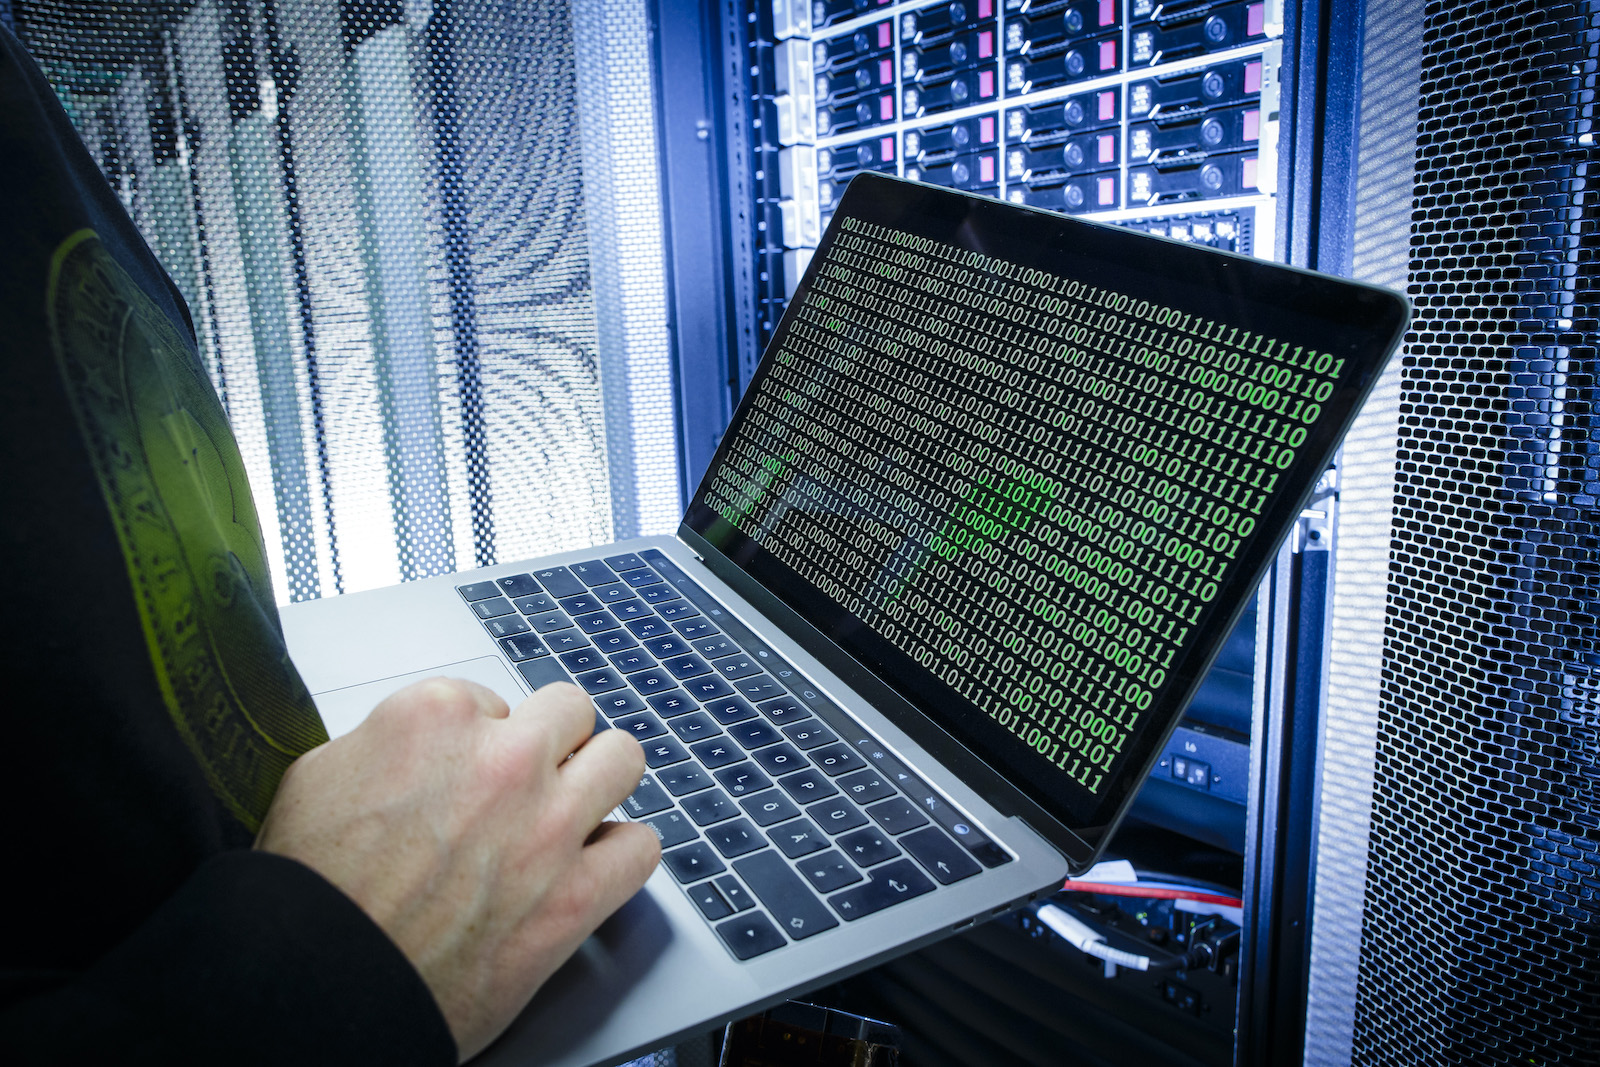 BERLIN, GERMANY - JANUARY 12: Symbolic photo with topic online crime, data theft and piracy: A man poses with a laptop showing a binary code in front of Server racks in a server center on January 12, 2018, in Berlin, Germany. (Photo Illustration by Thomas Trutschel/Photothek via Getty Images)